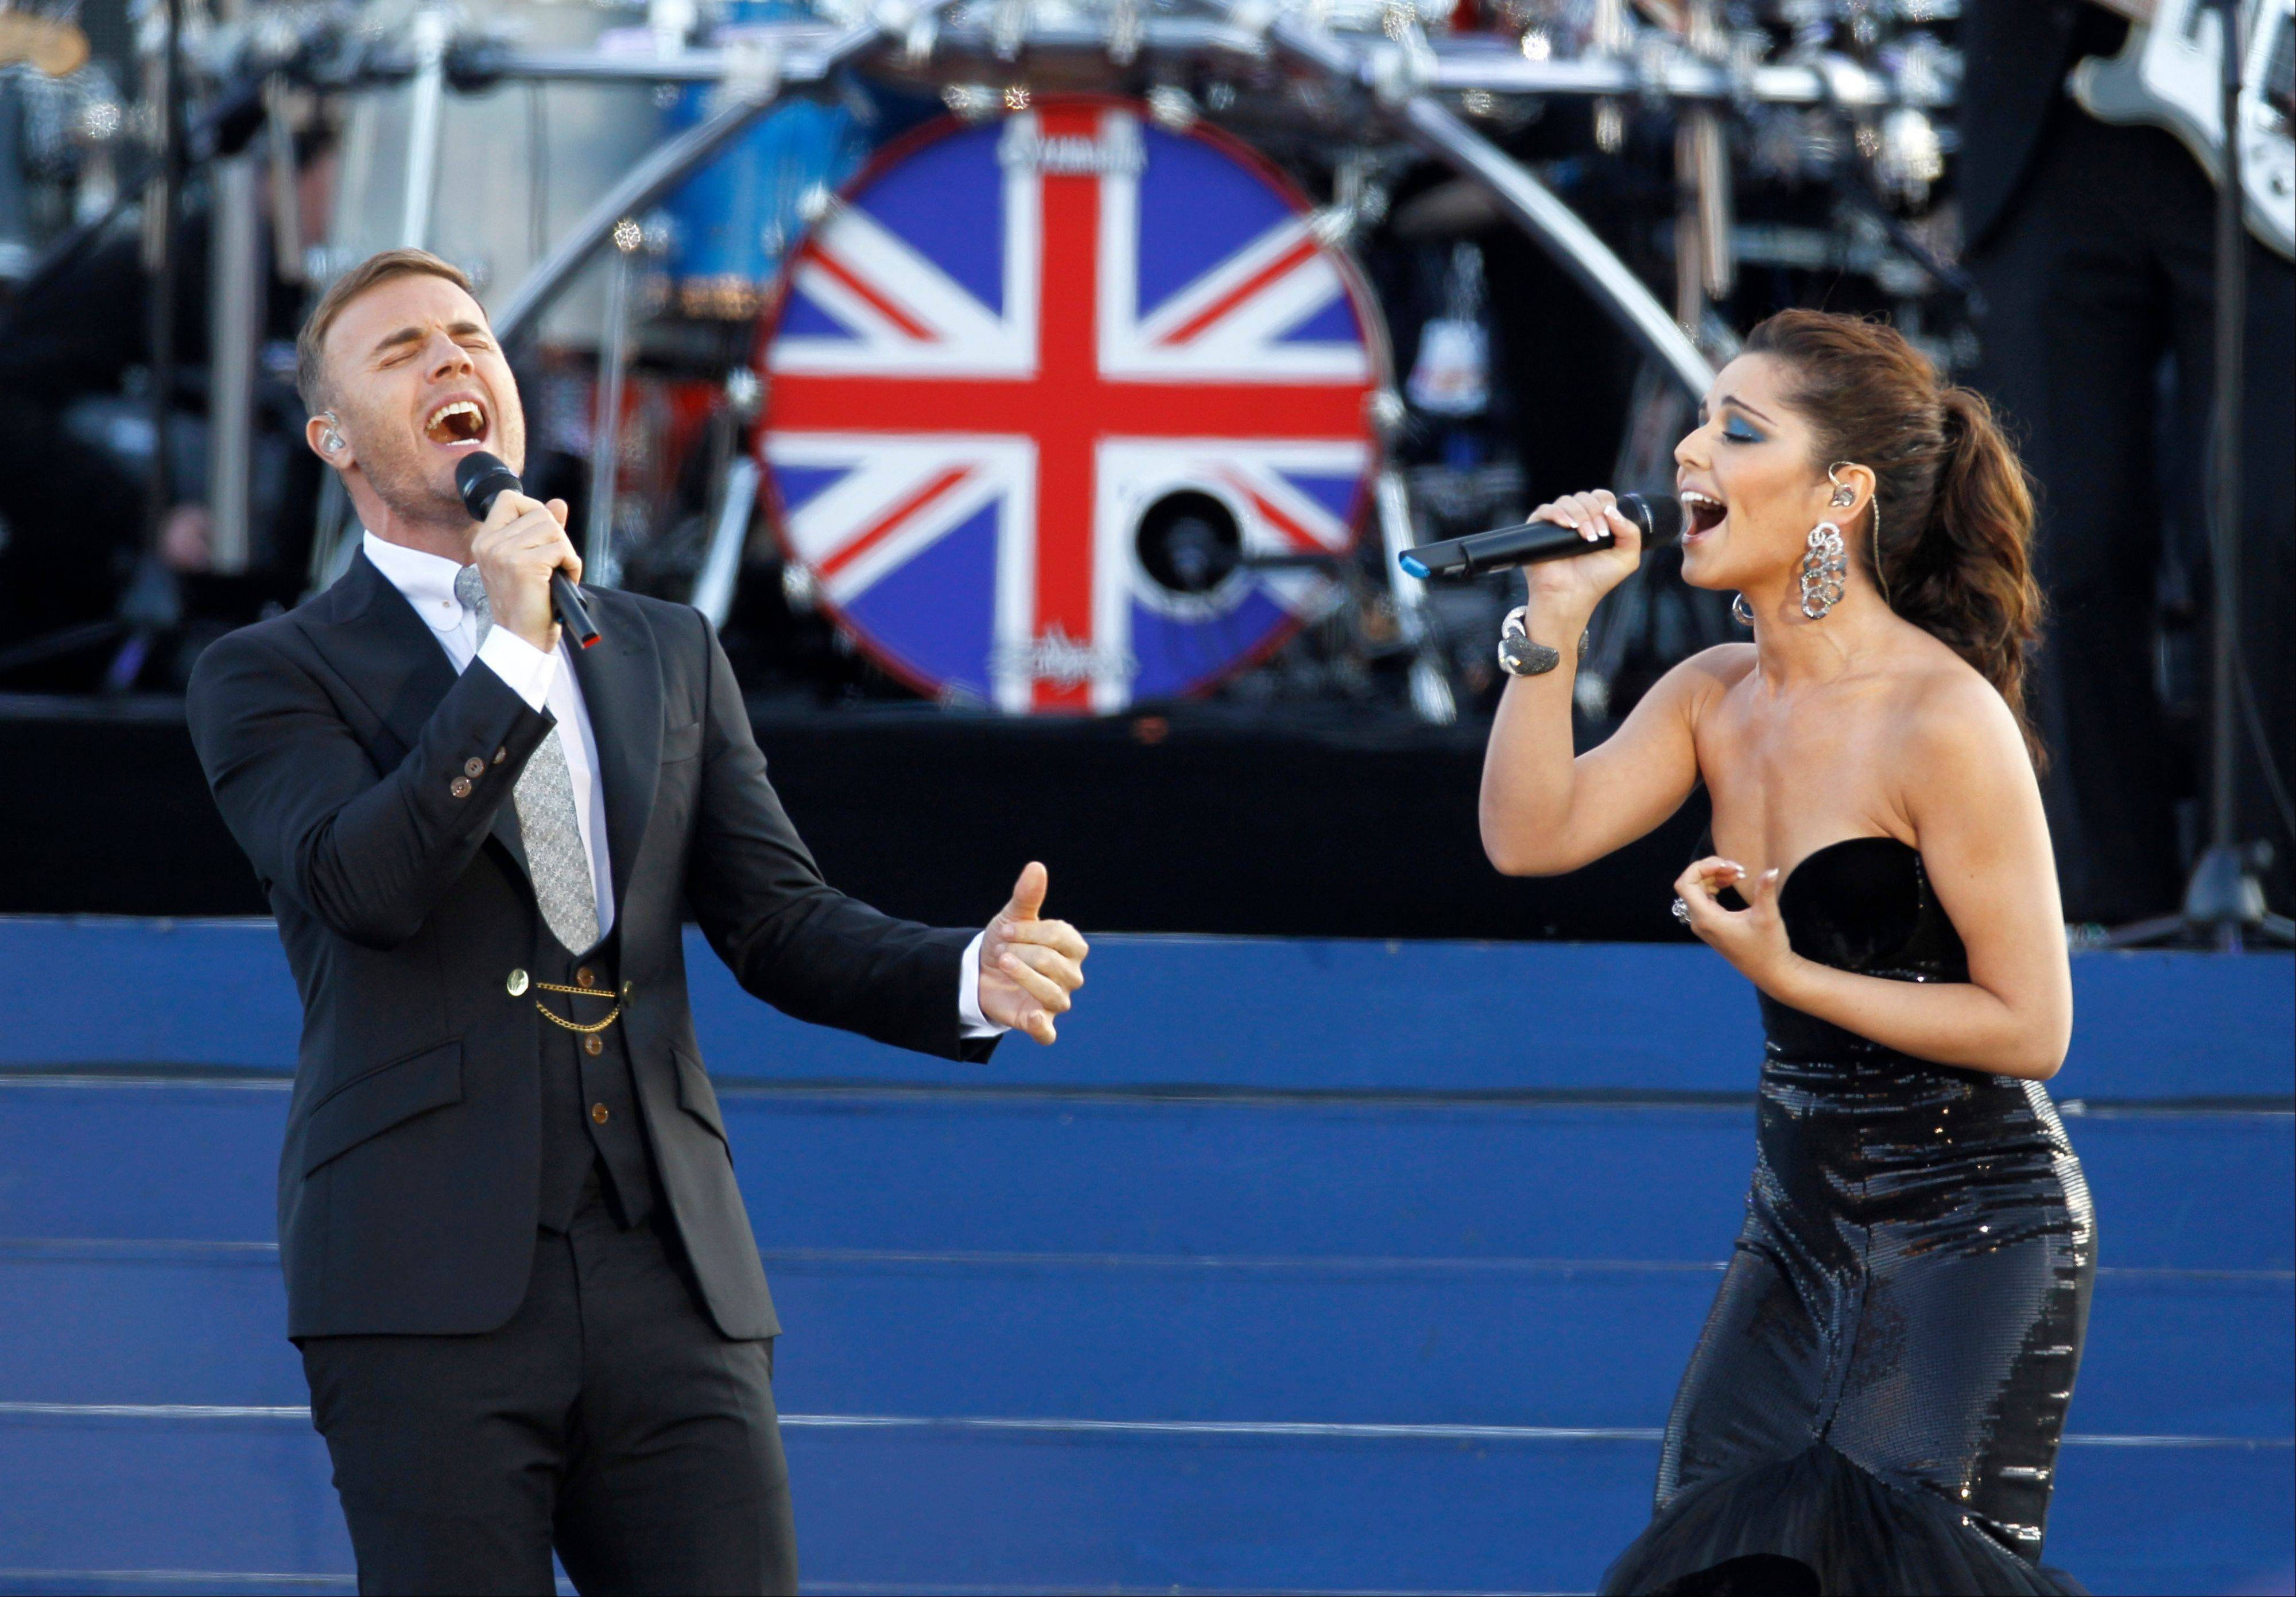 Gary Barlow and Cheryl Cole perform at the Queen's Jubilee Concert in front of Buckingham Palace, London, Monday, June 4, 2012. The concert is a part of four days of celebrations to mark the 60-year reign of Britain's Queen Elizabeth II.